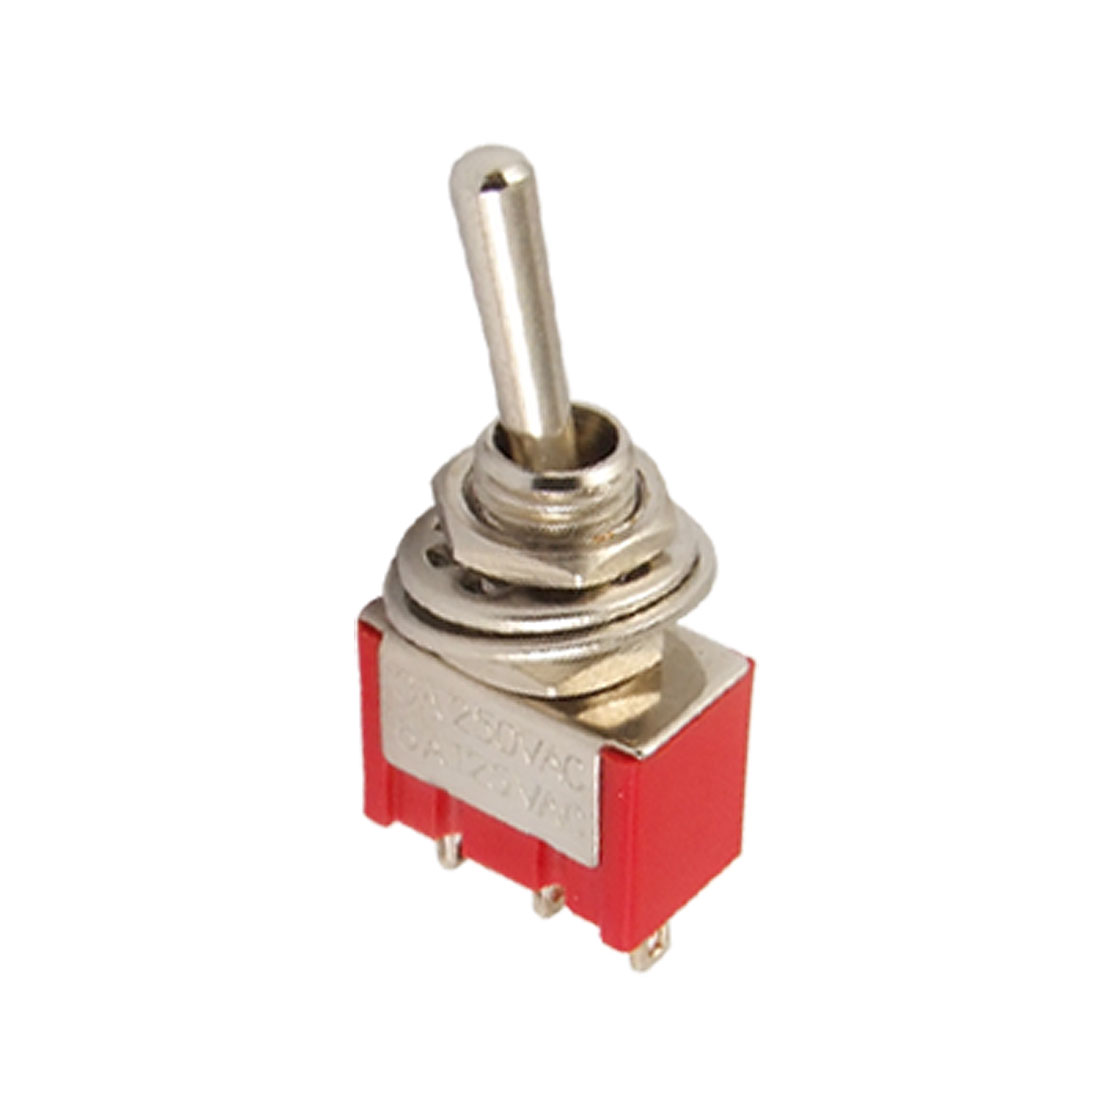 AC 250V/3A 125V/6A SPDT On/On 3 Prong Terminal Toggle Switch